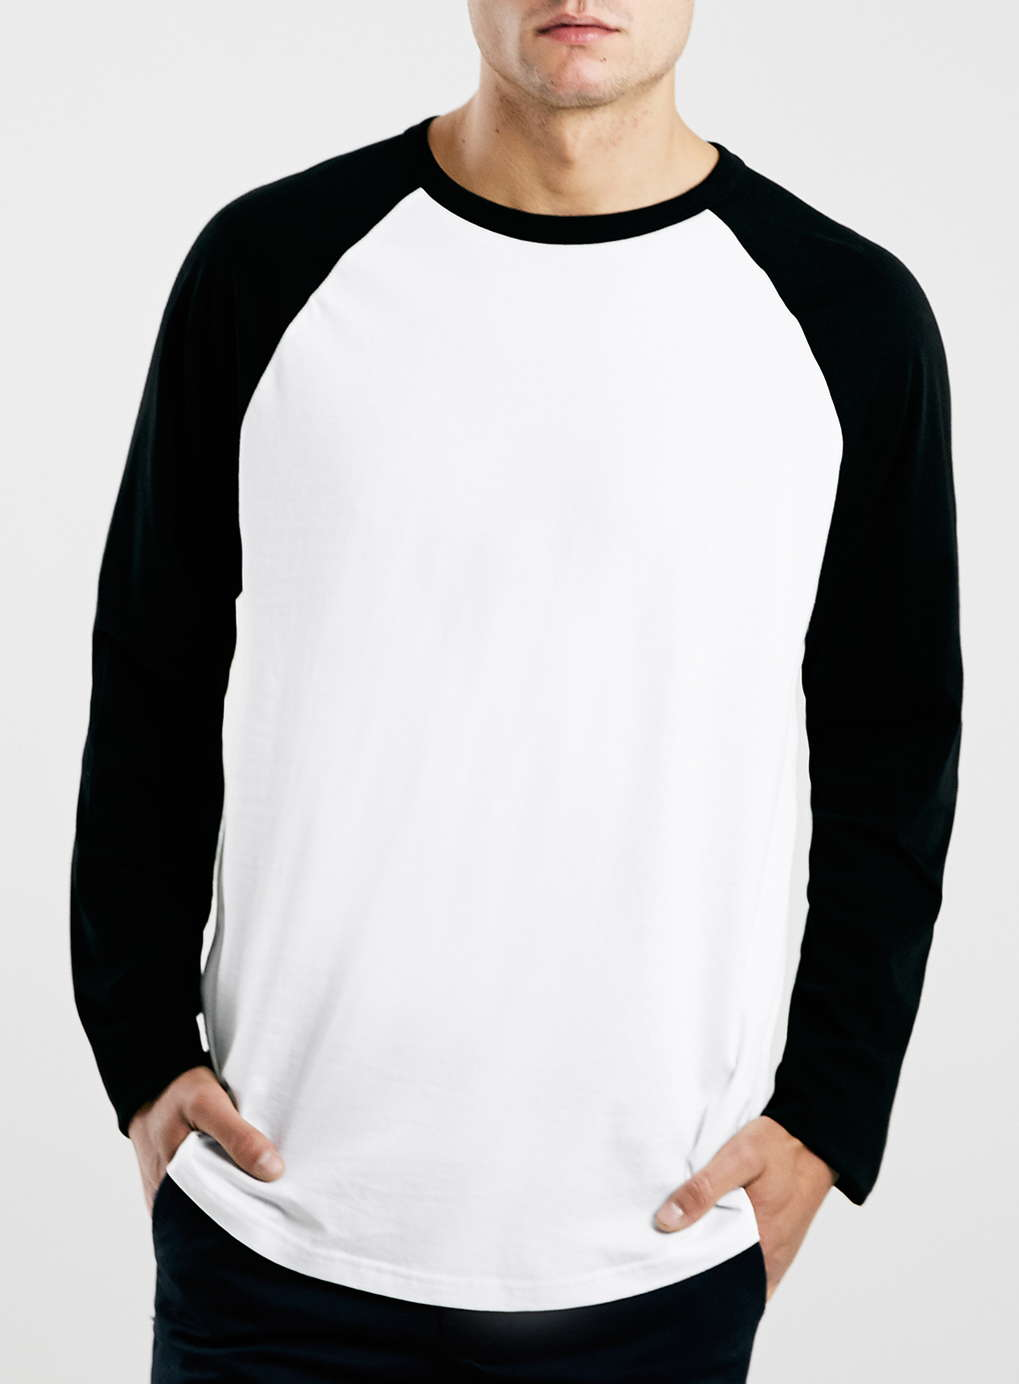 White/Black Contrast Raglan Long Sleeve T-Shirt | Blingby